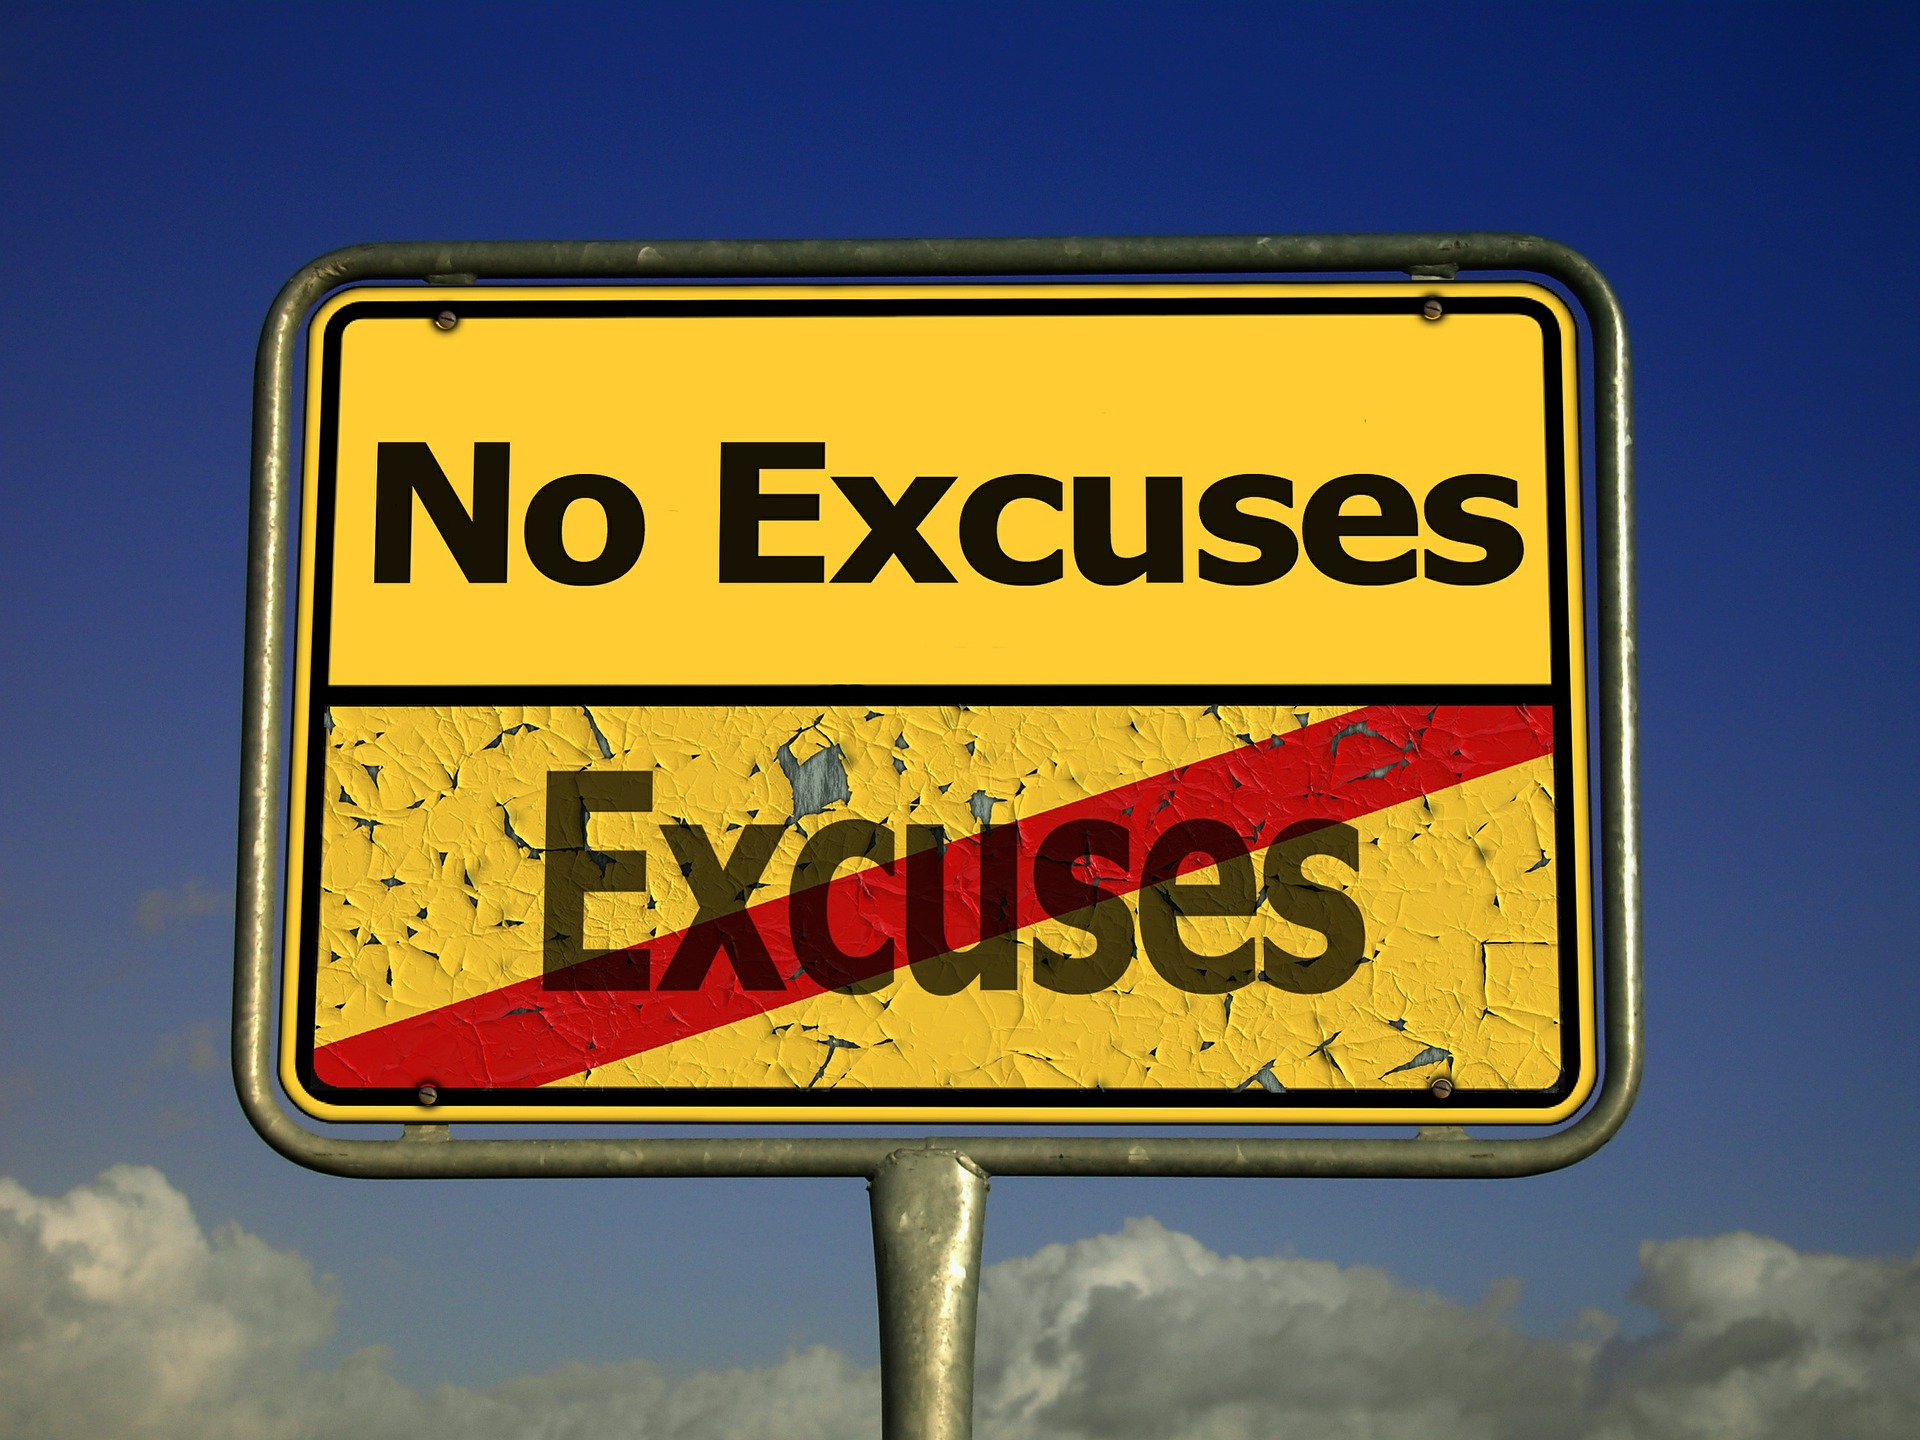 Leaving excuses behind for no excuses